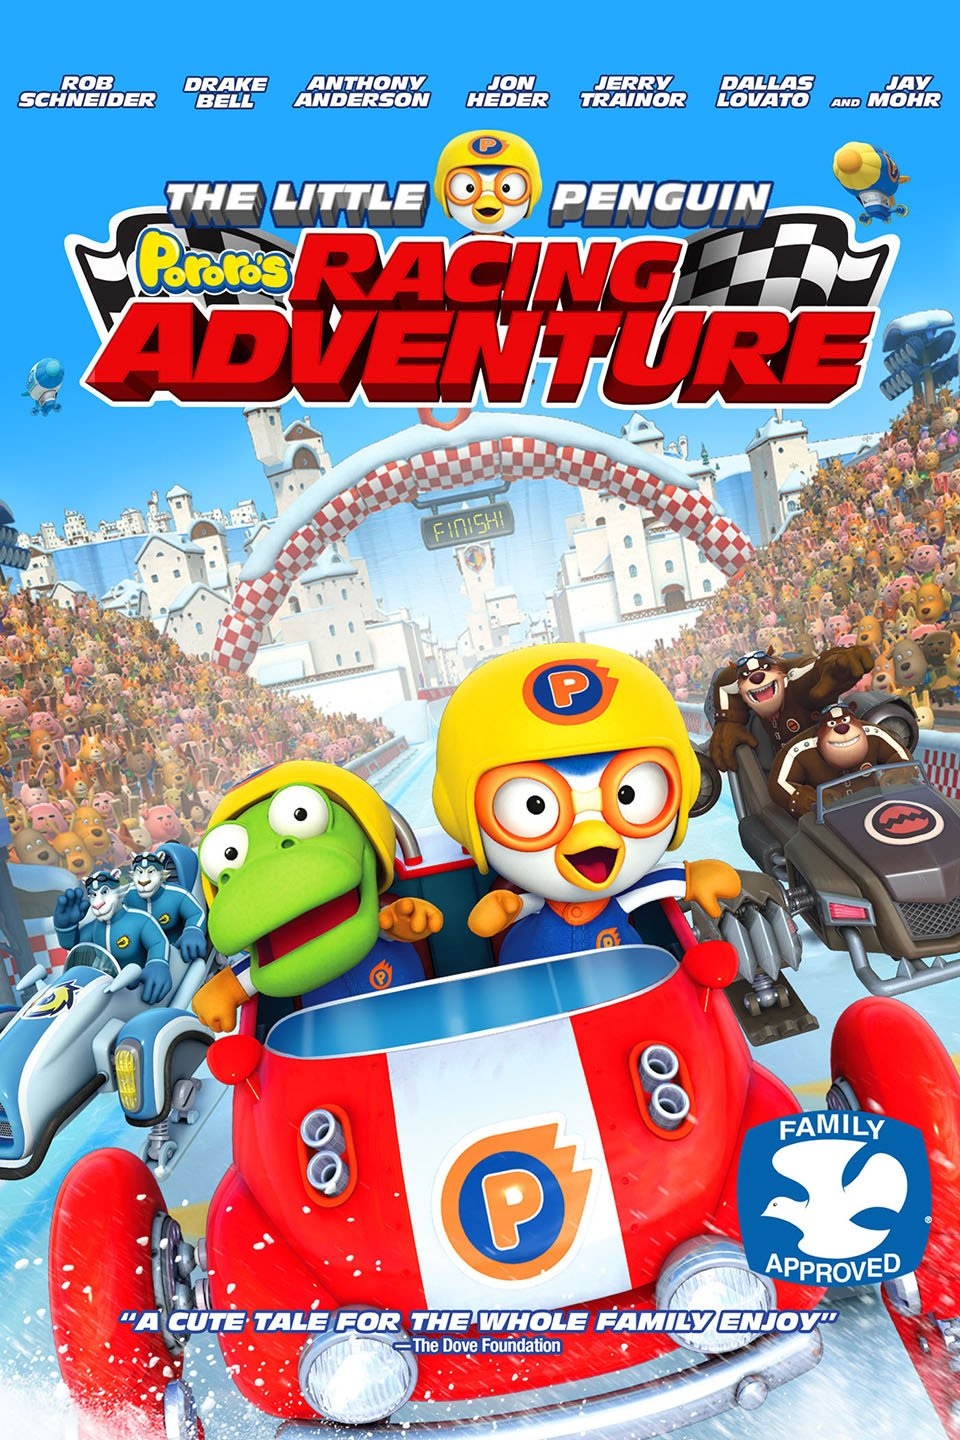 The Little Penguin Pororo's Racing Adventure-Pororo, the Racing Adventure